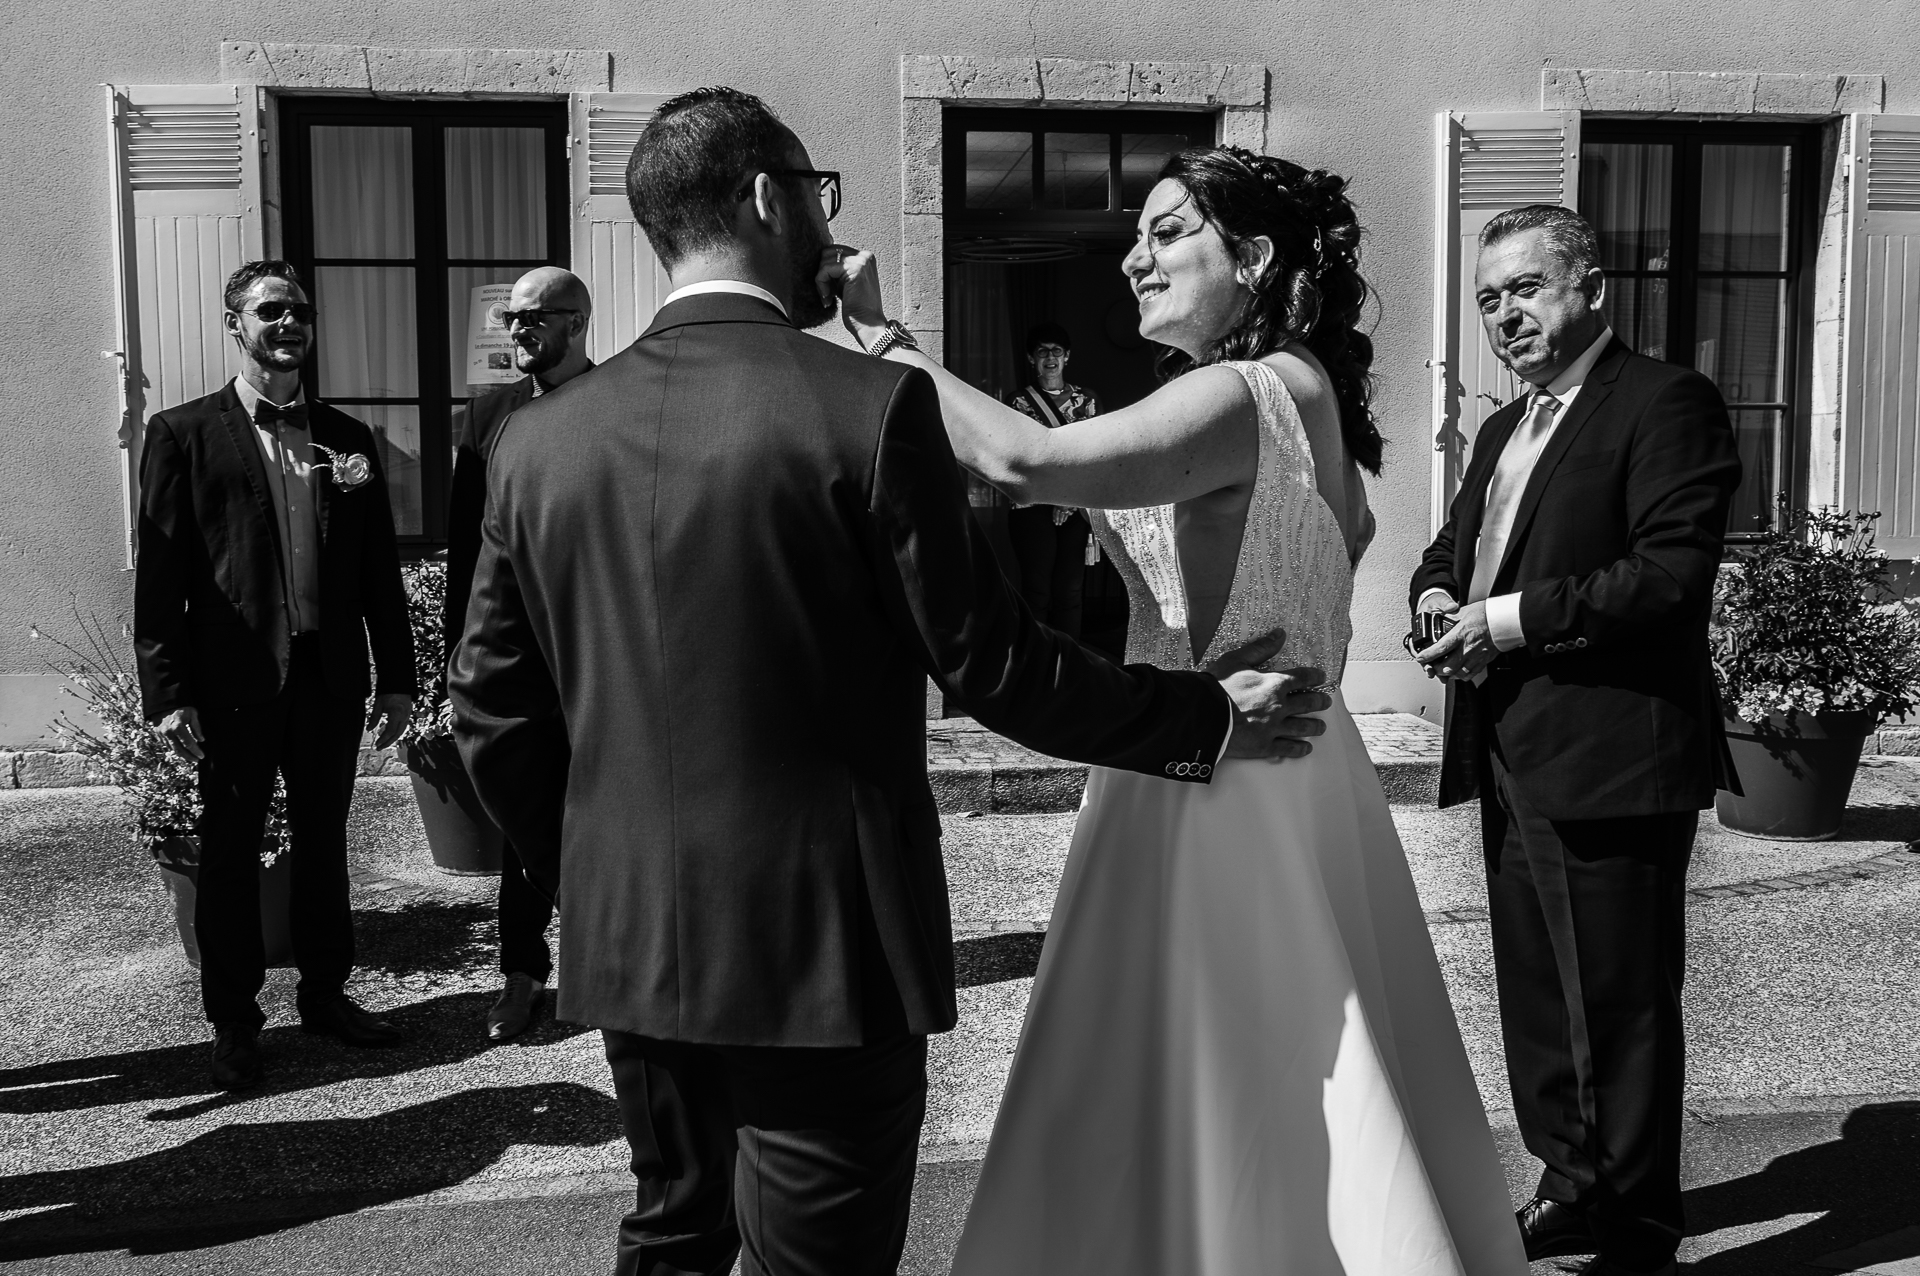 Orléans France Elopements and Paris Photographers | The couple's first encounter just before entering the town hall